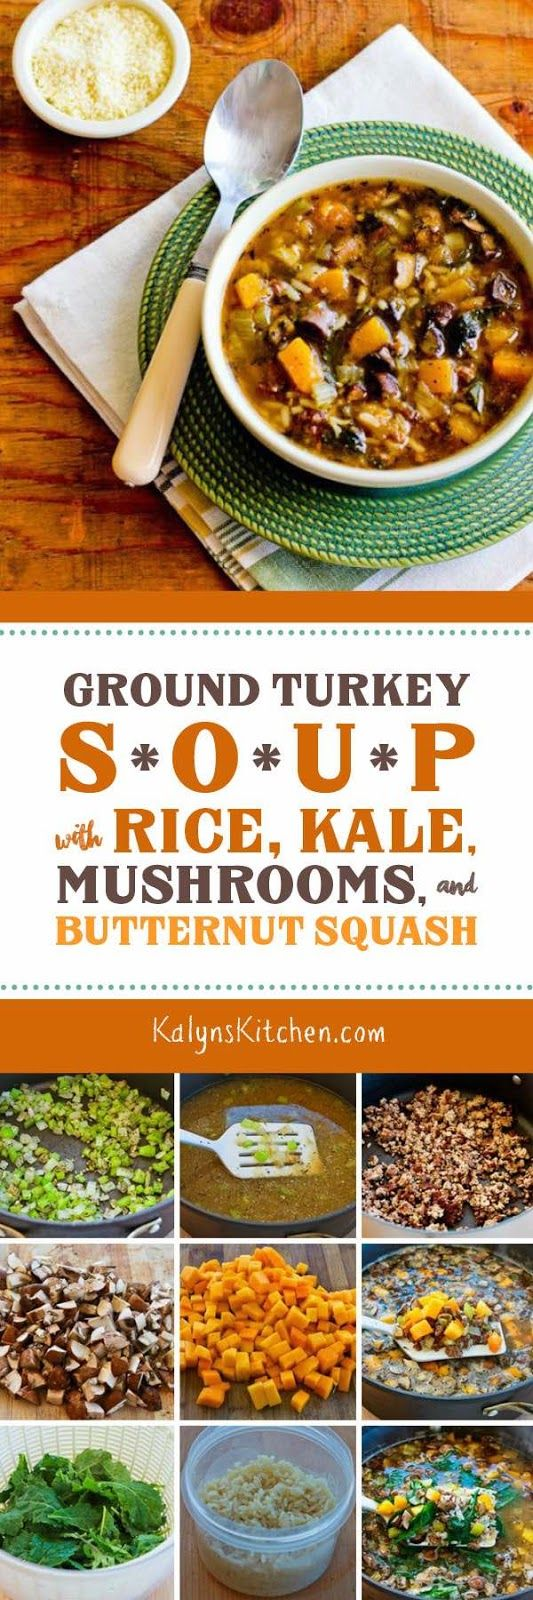 Ground Turkey Soup Recipe with Rice, Kale, Mushrooms, and Butternut Squash is a delicious gluten-free and South Beach Diet Phase Two soup that also freezes well. [found on KalynsKitchen.com]